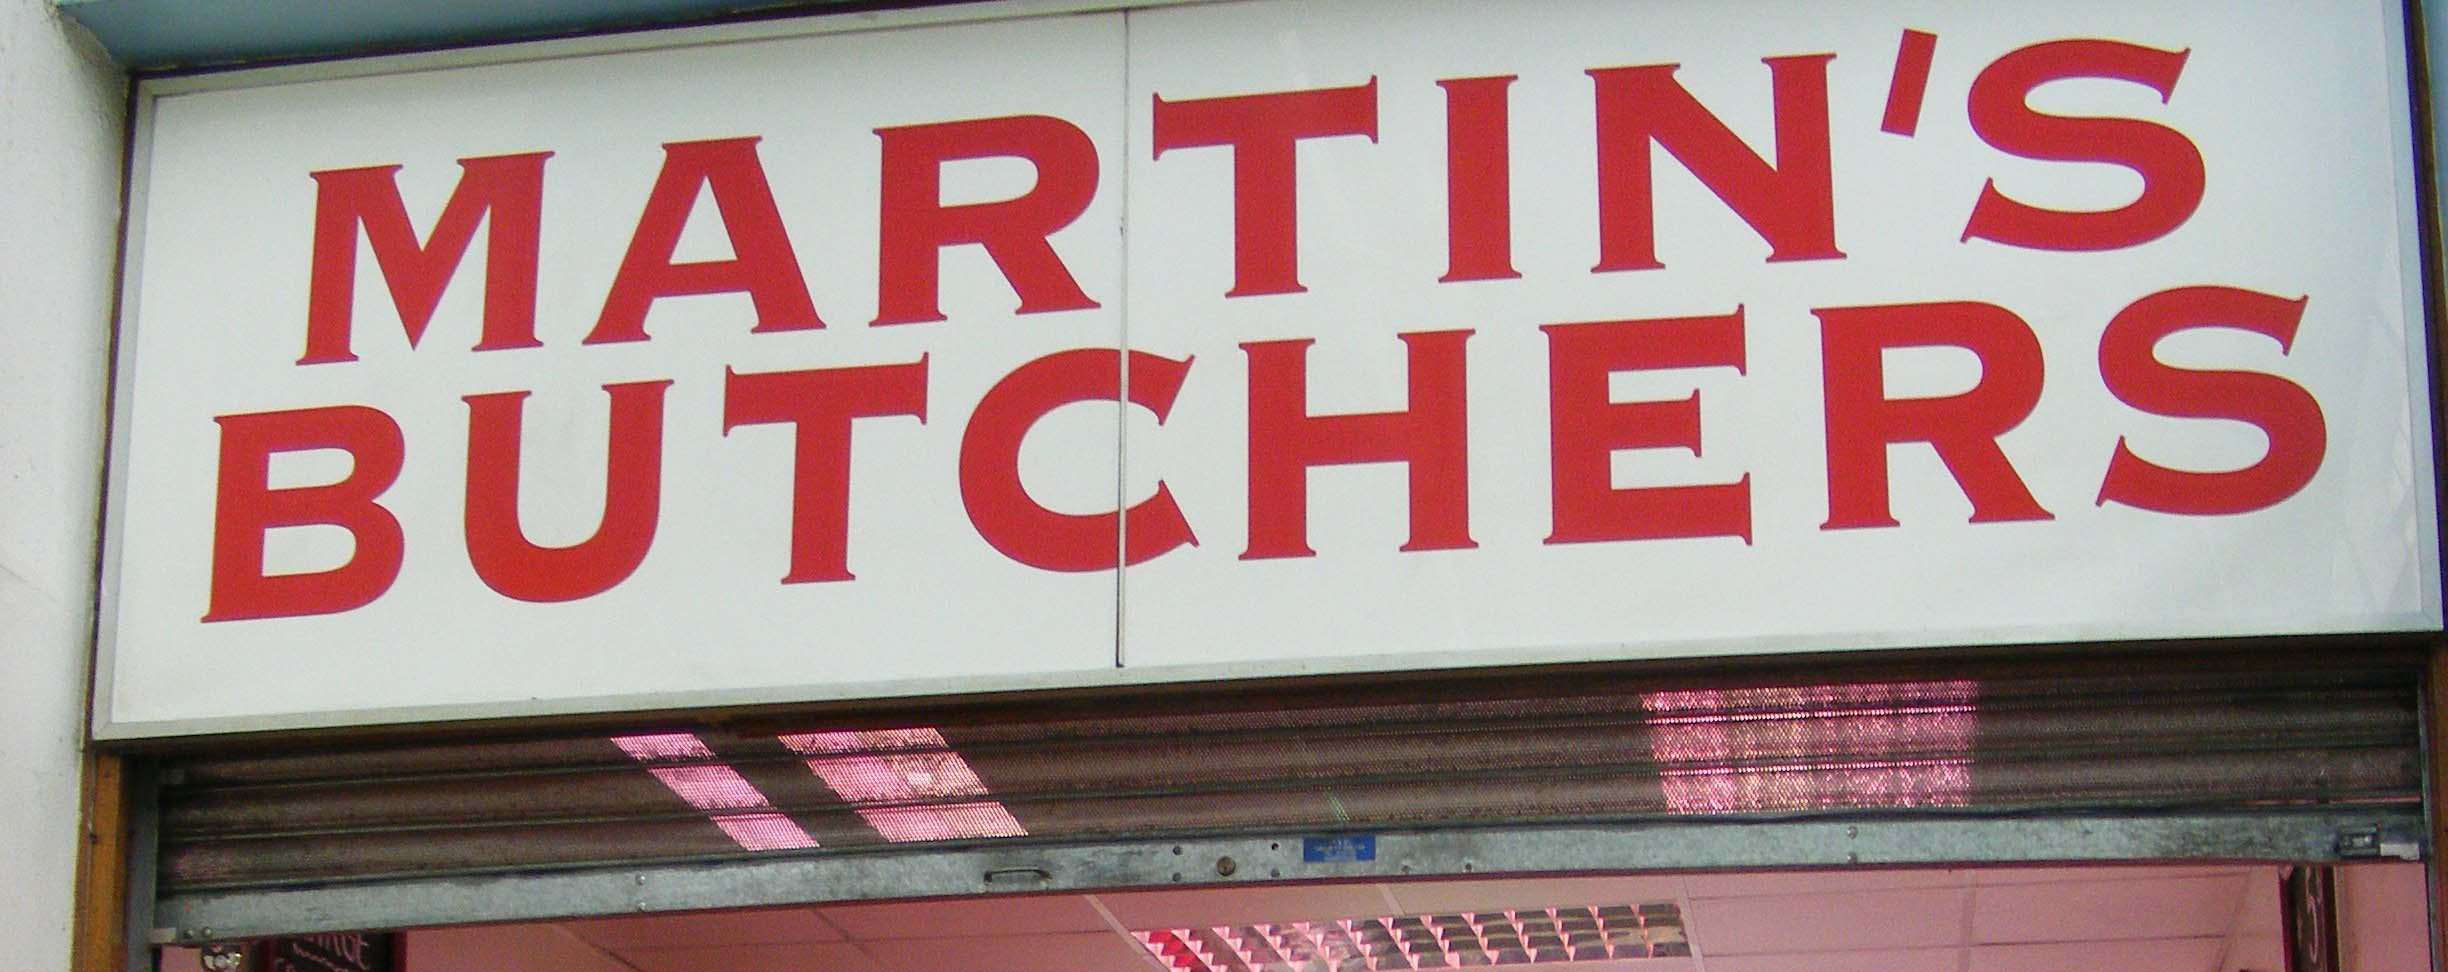 Martin'sButchers.jpg